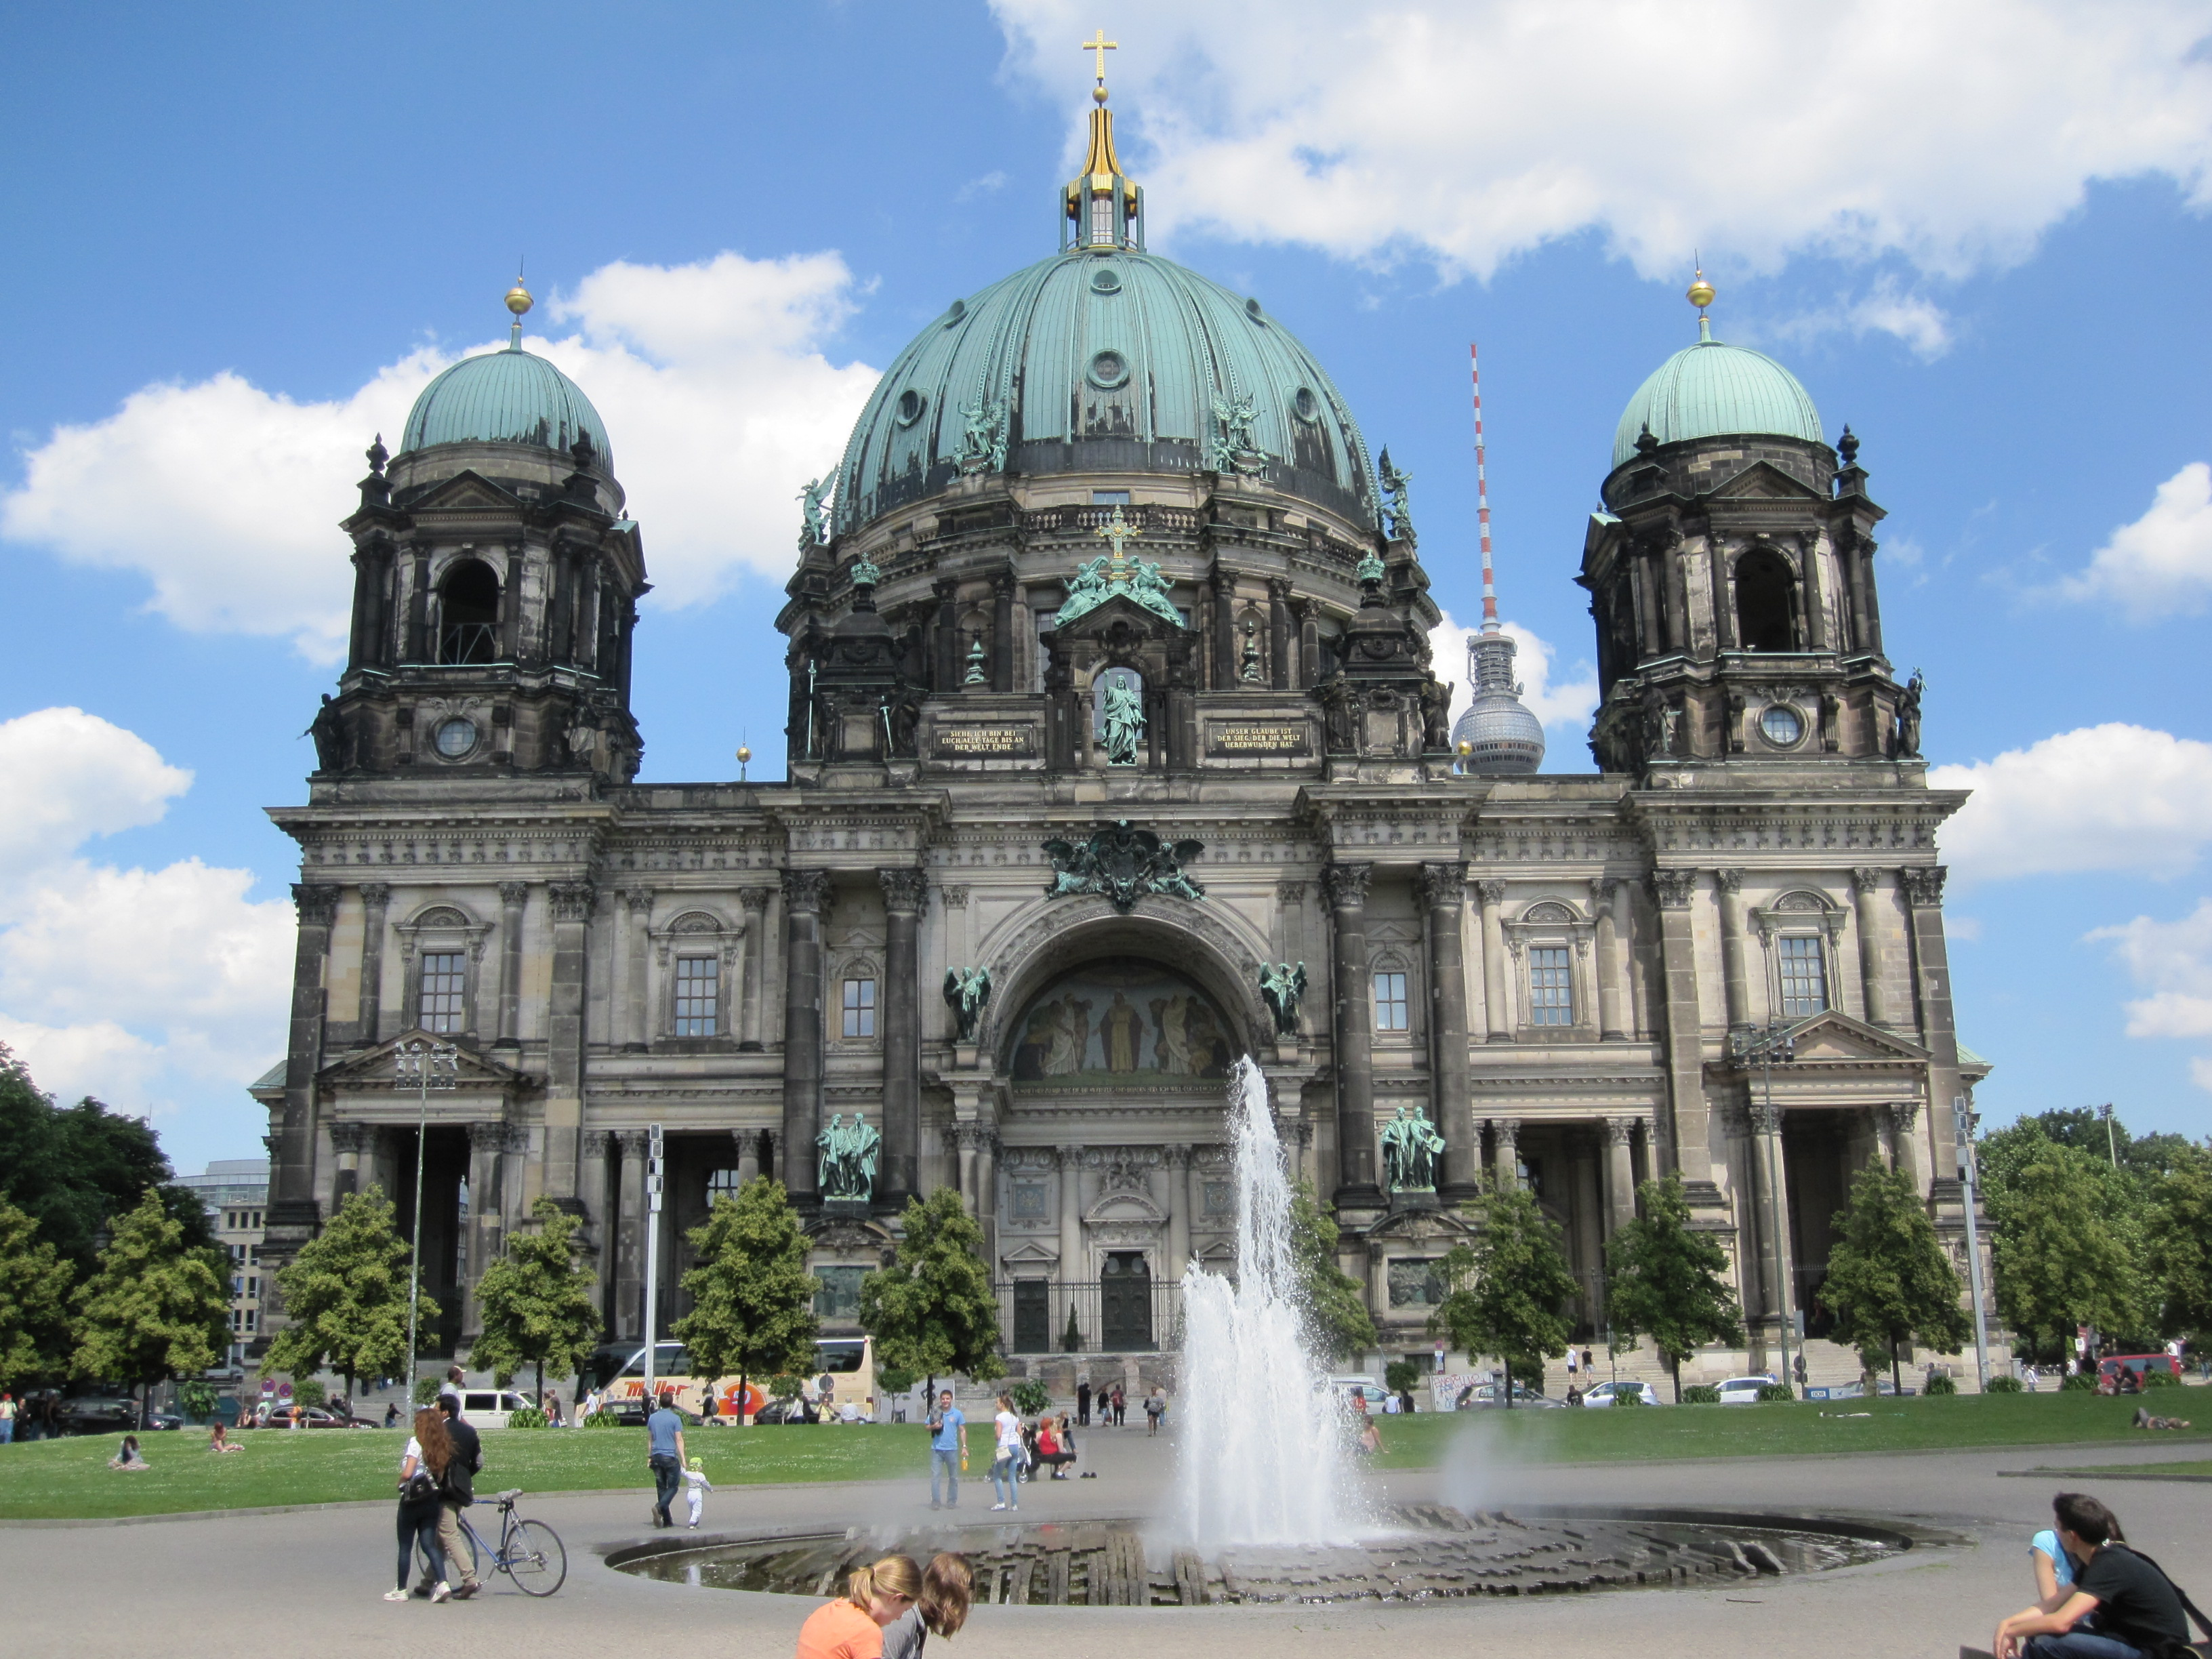 exterior of Berlin Cathedral on a sunny day